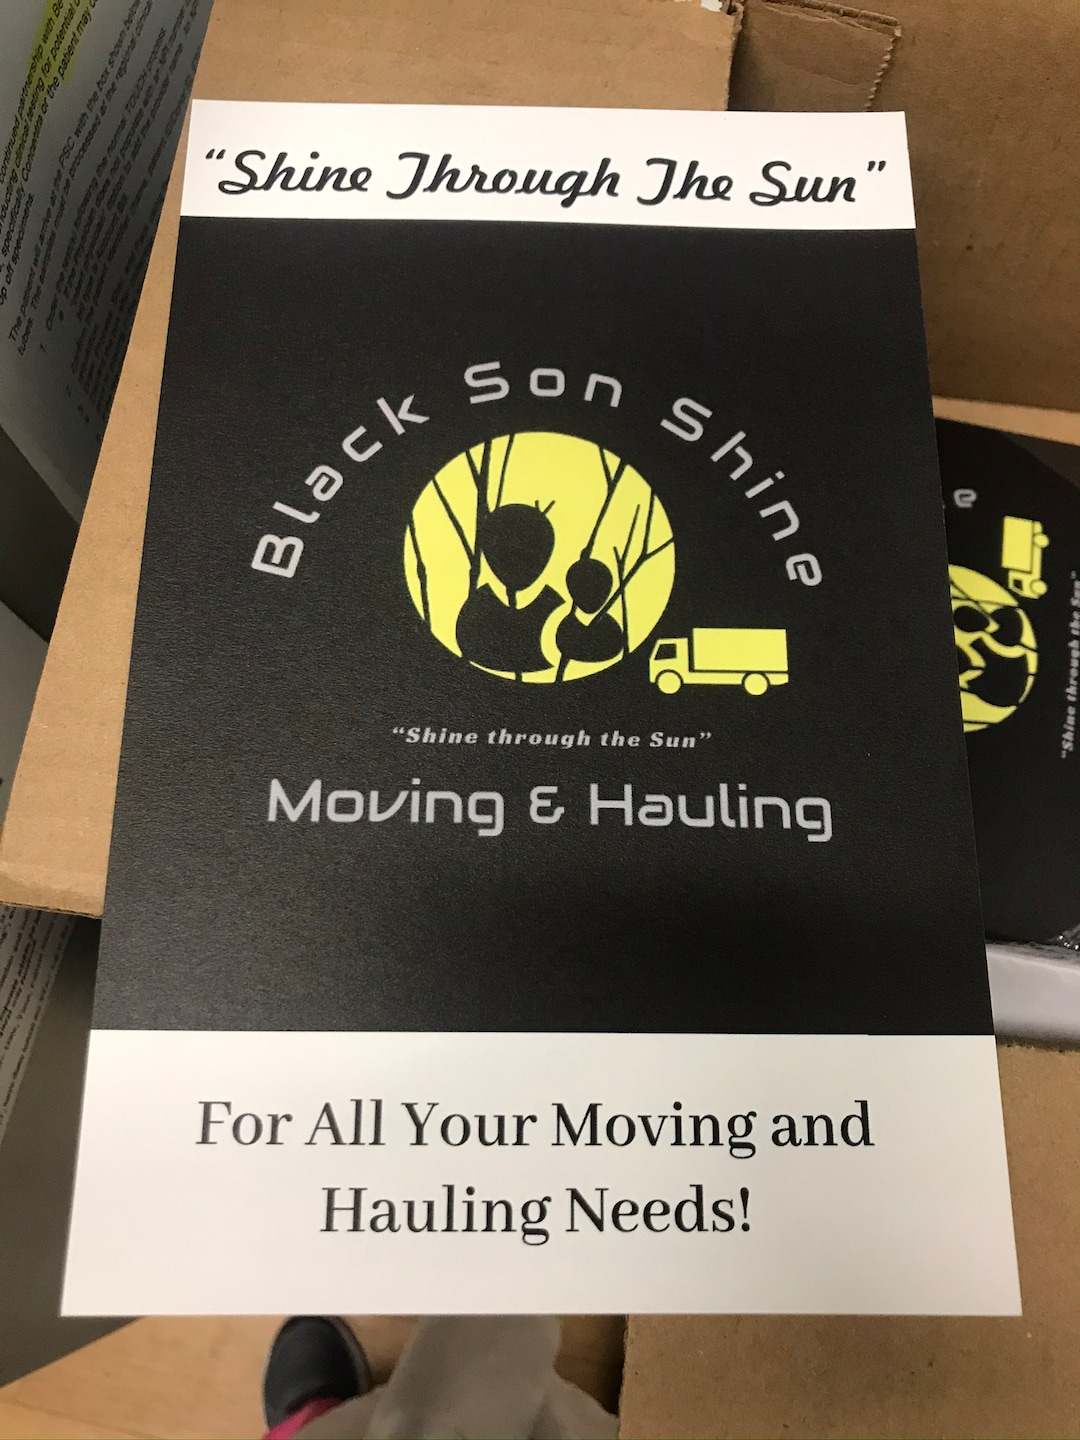 Black Son Shine Moving & Hauling, LLC